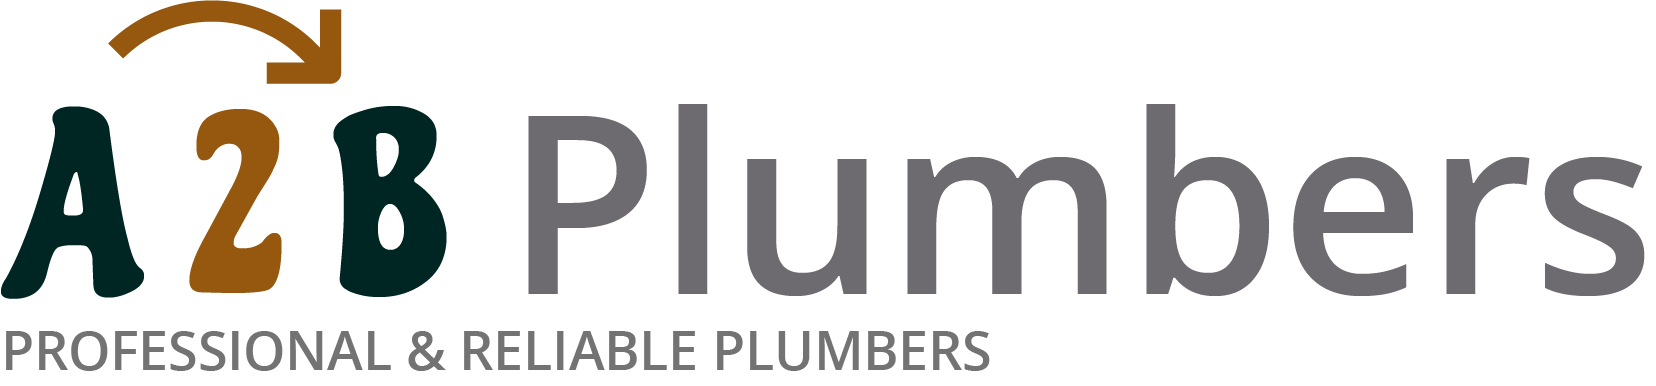 If you need a boiler installed, a radiator repaired or a leaking tap fixed, call us now - we provide services for properties in Upminster and the local area.